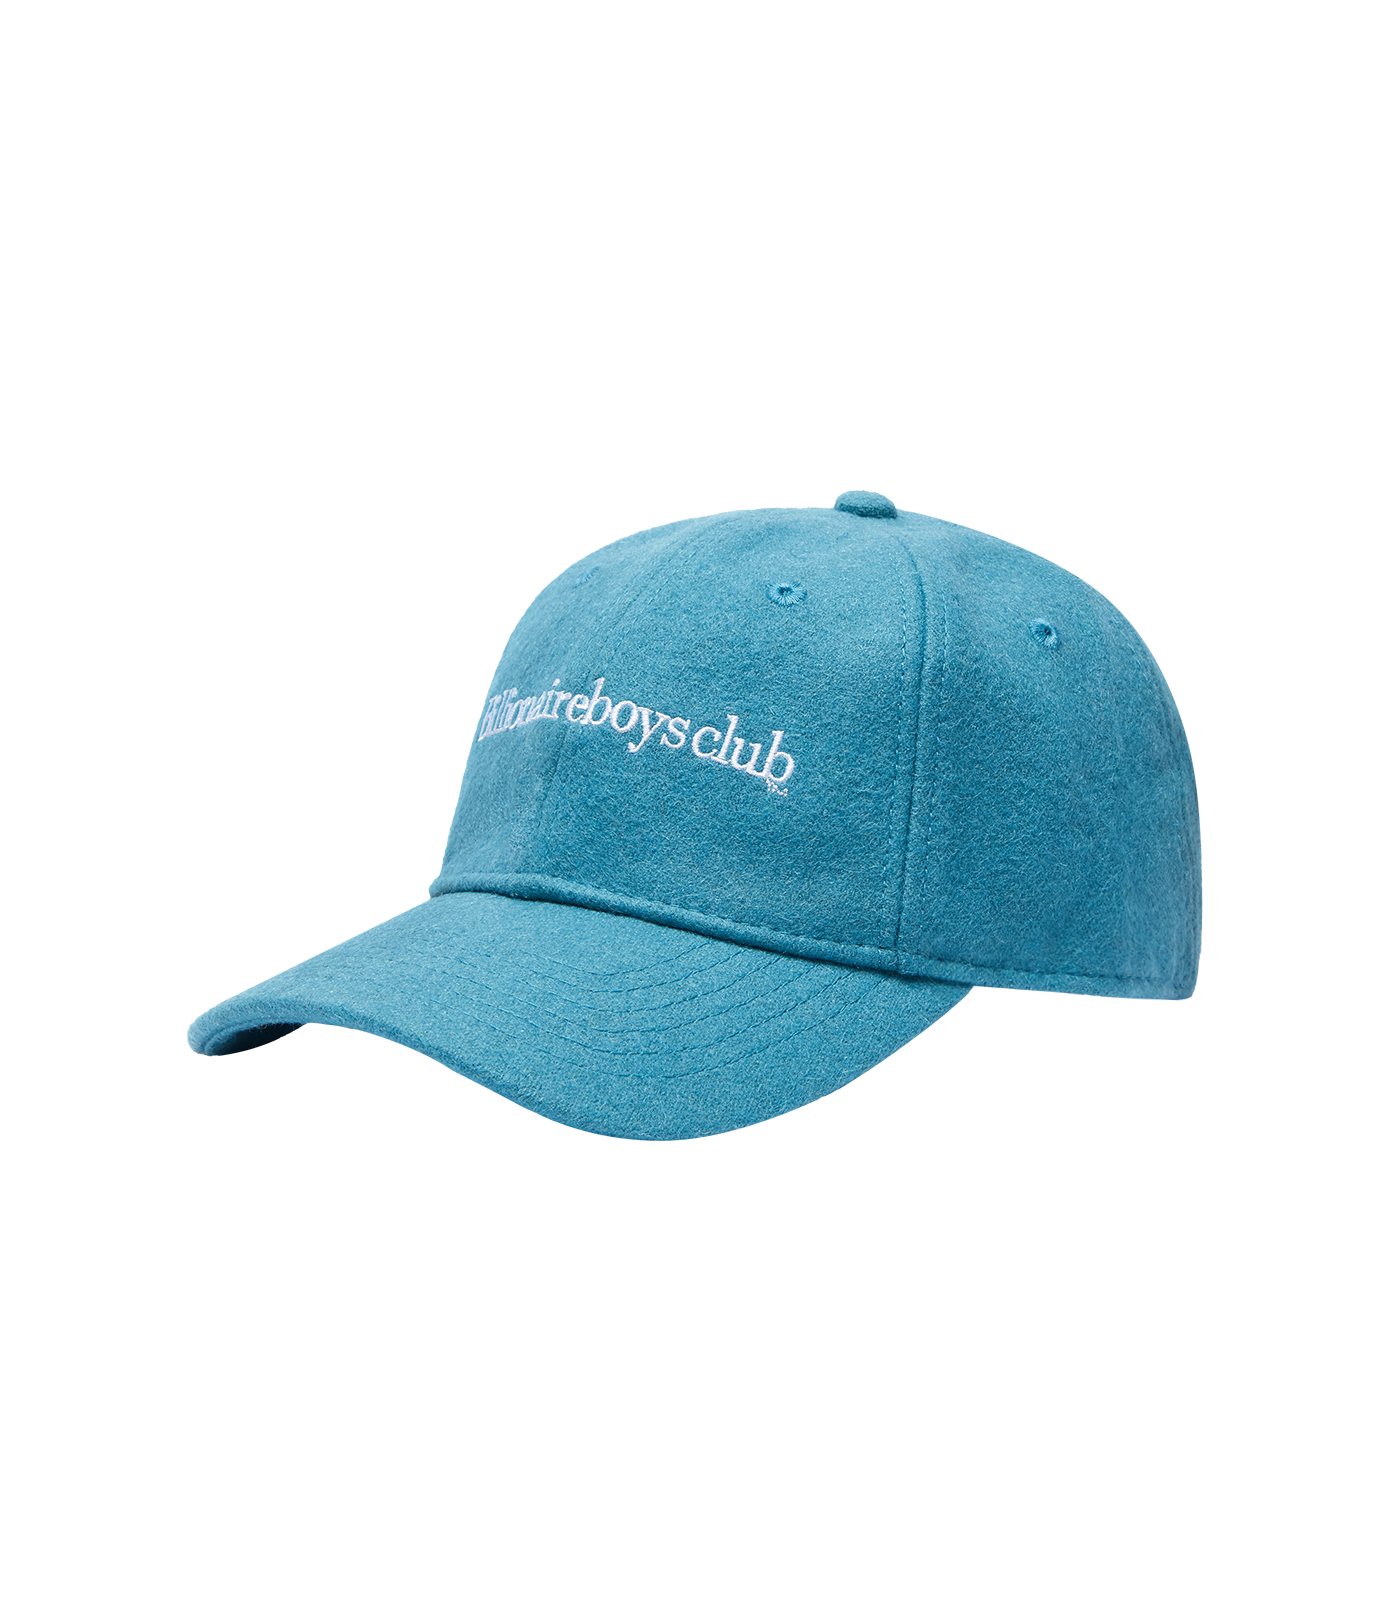 EMBROIDERED WOOL CURVED VISOR CAP - AQUA